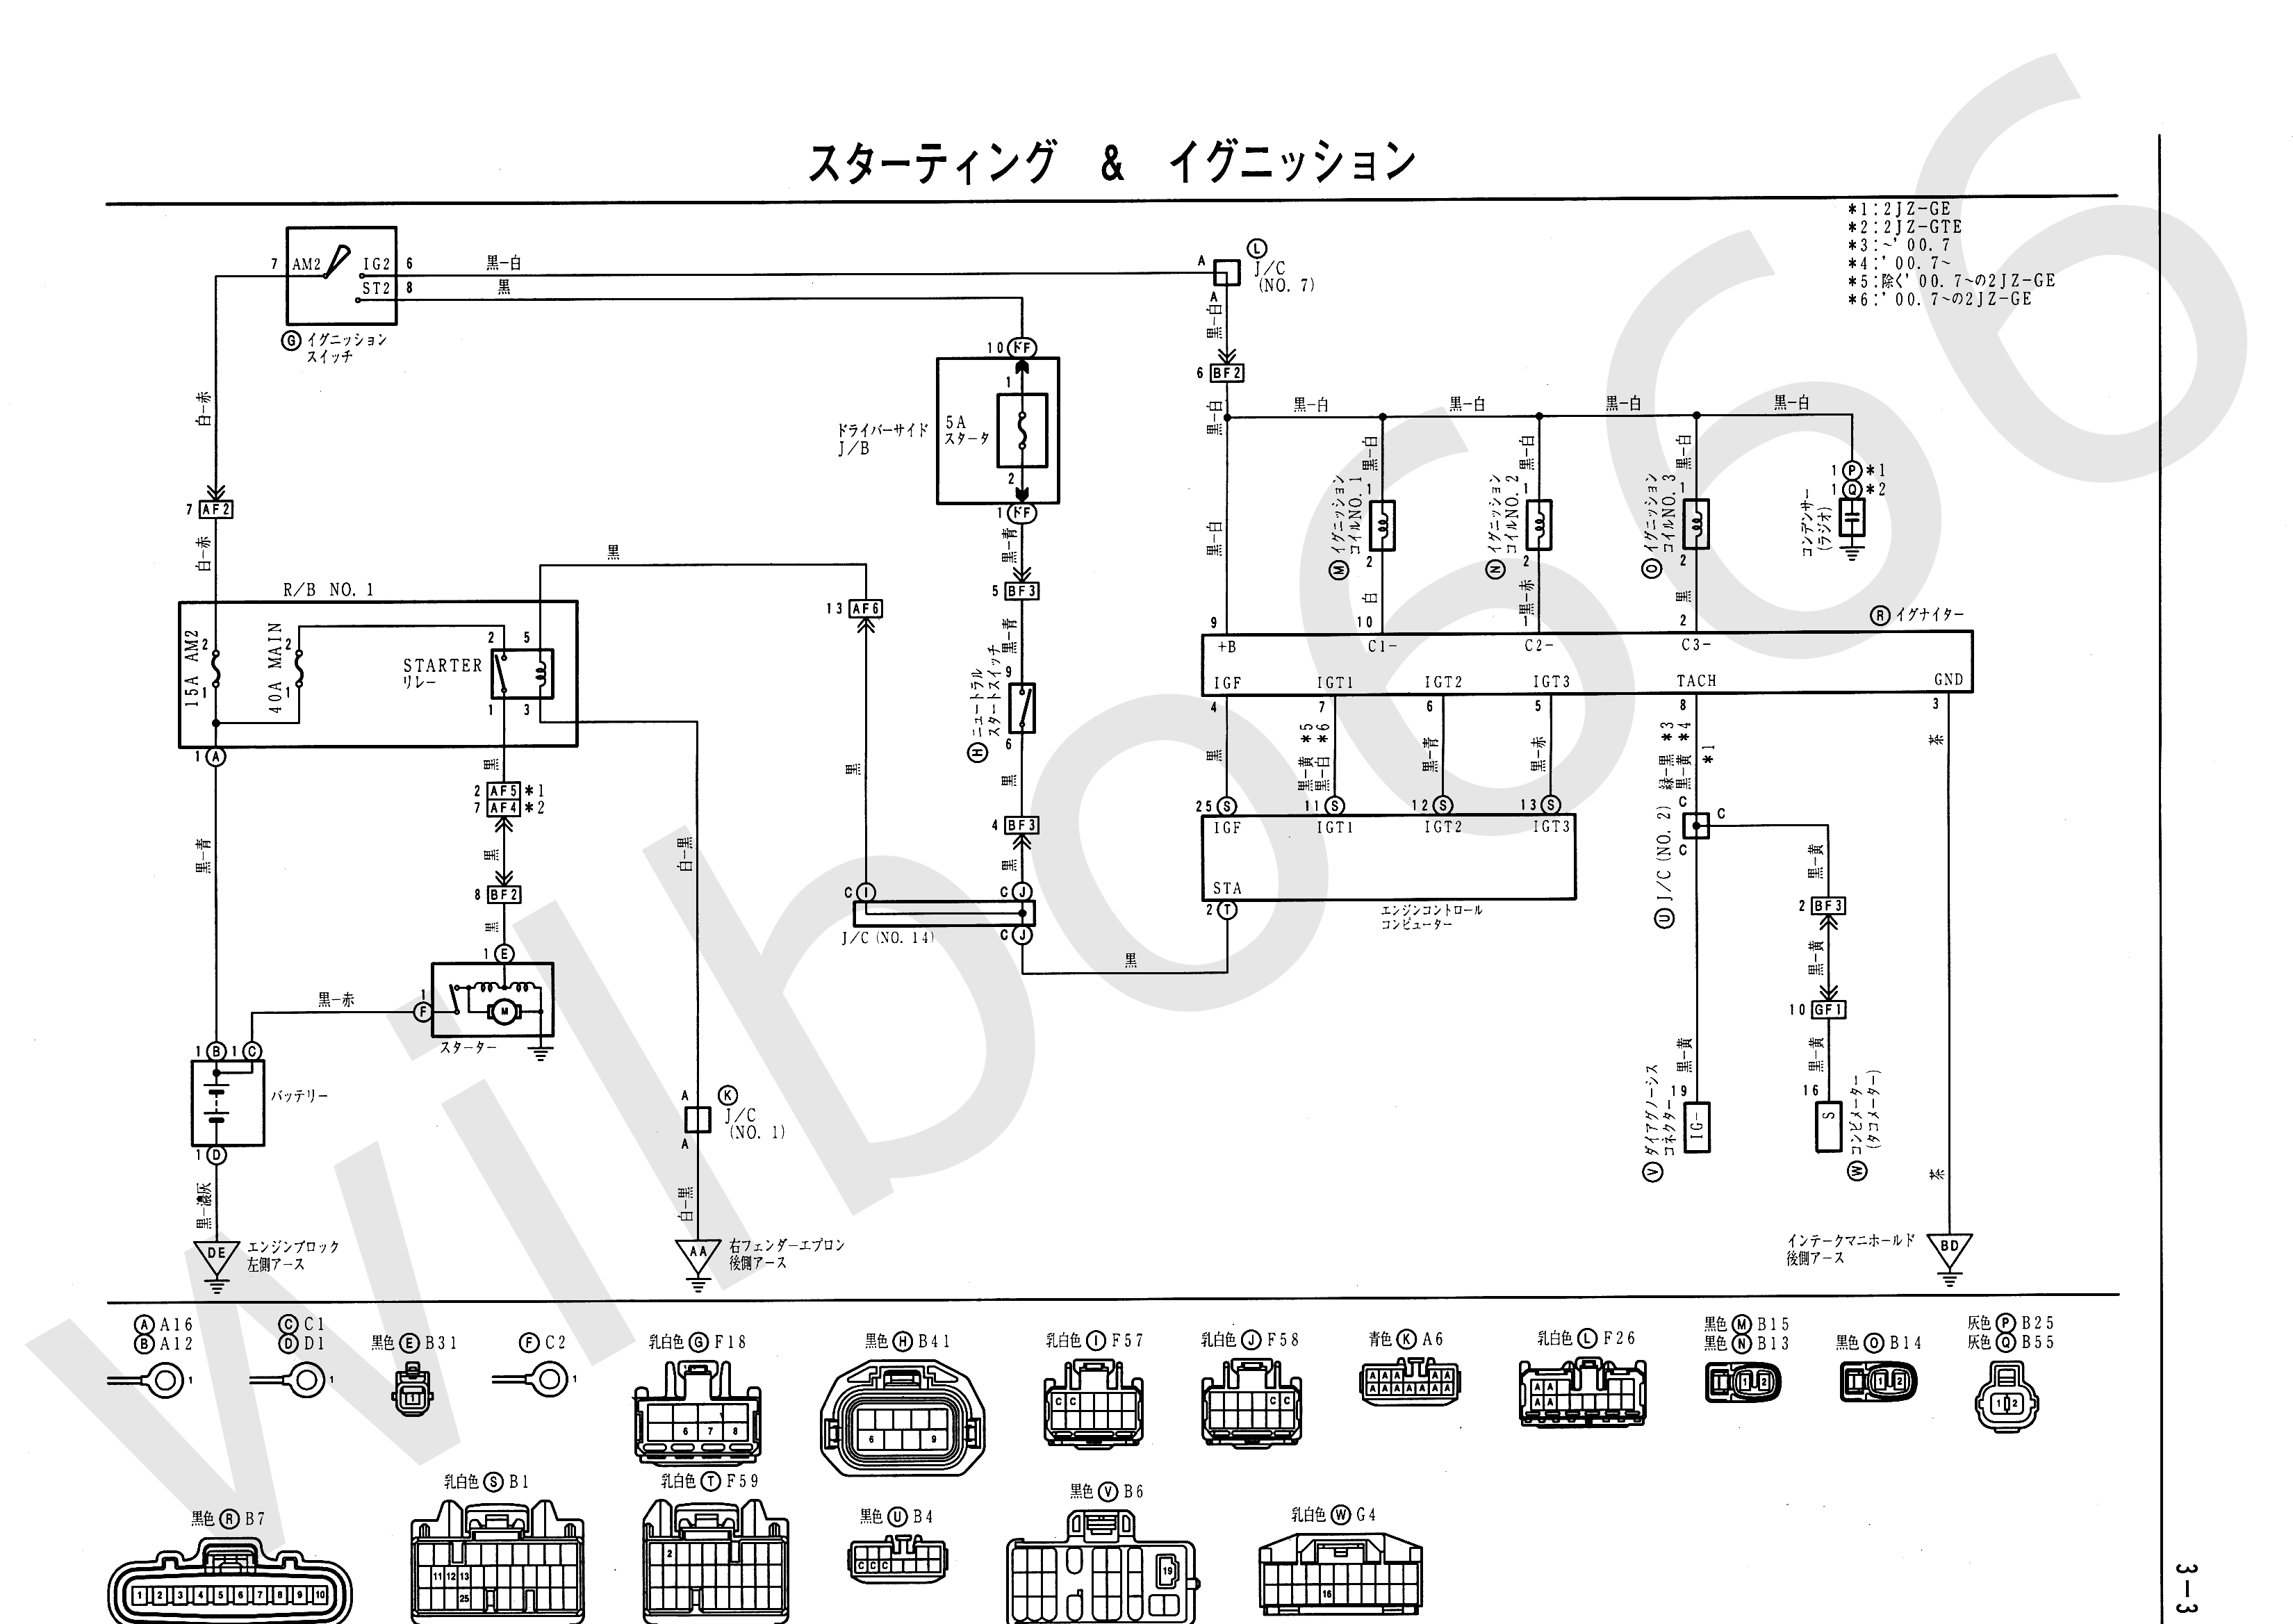 Wilbo666 2jz Gte Vvti Jzs161 Aristo Engine Wiring Diagram Power Over Ethernet Free Download Diagrams Toyota